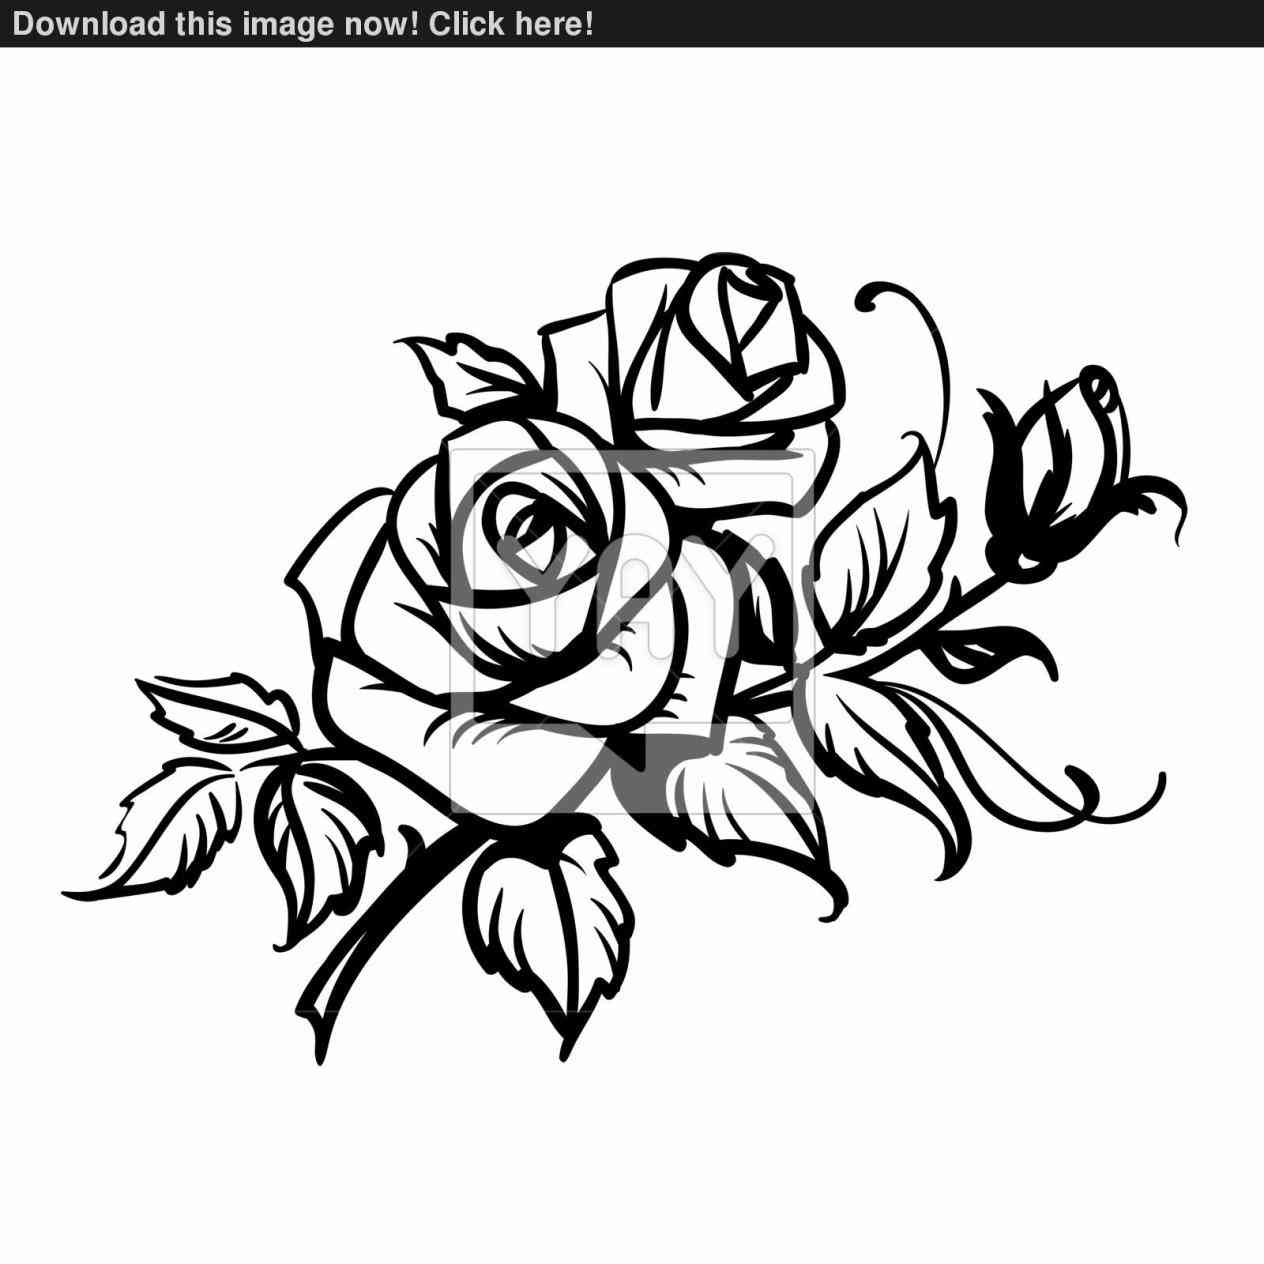 1264x1264 Roses Tattoo Design By Carrieannnn On Heart Rose Sketch